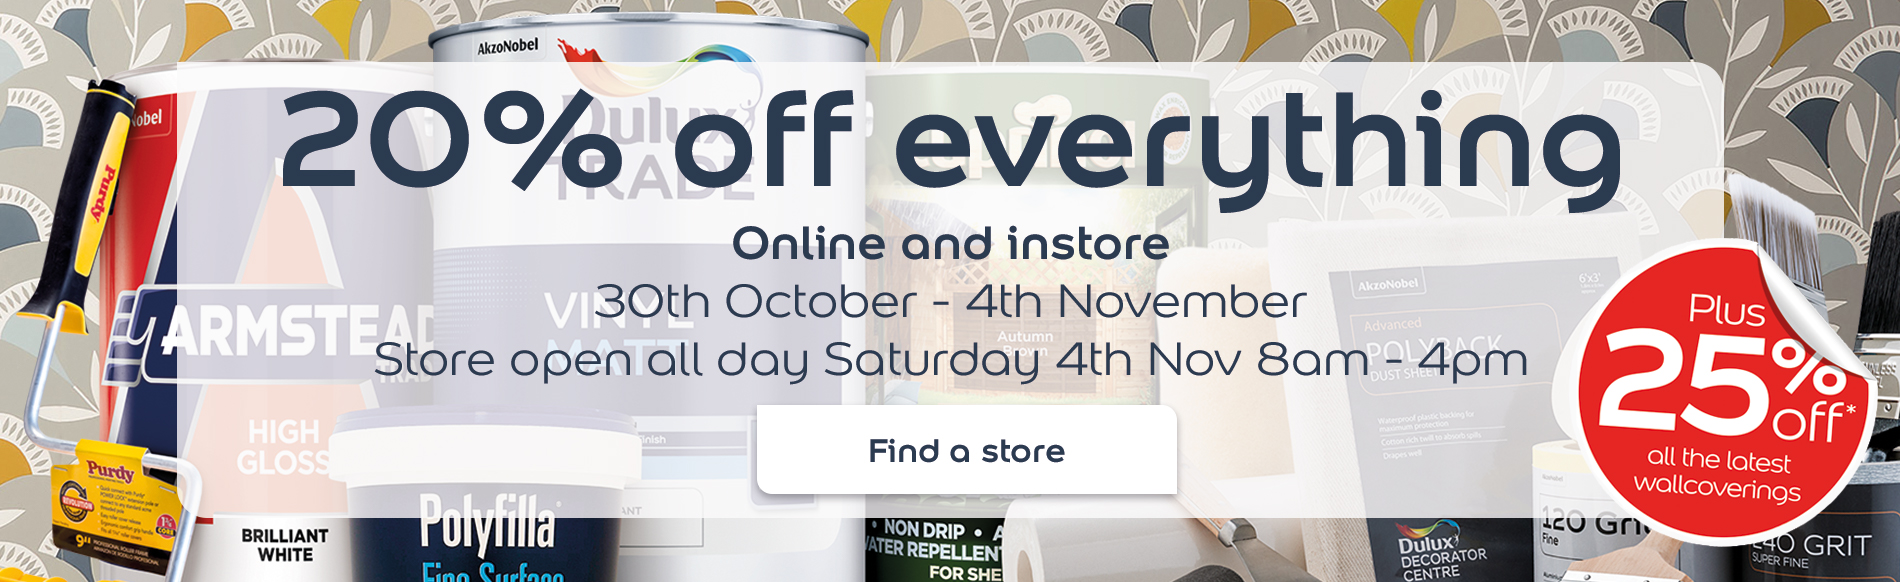 20% off everything online and in store